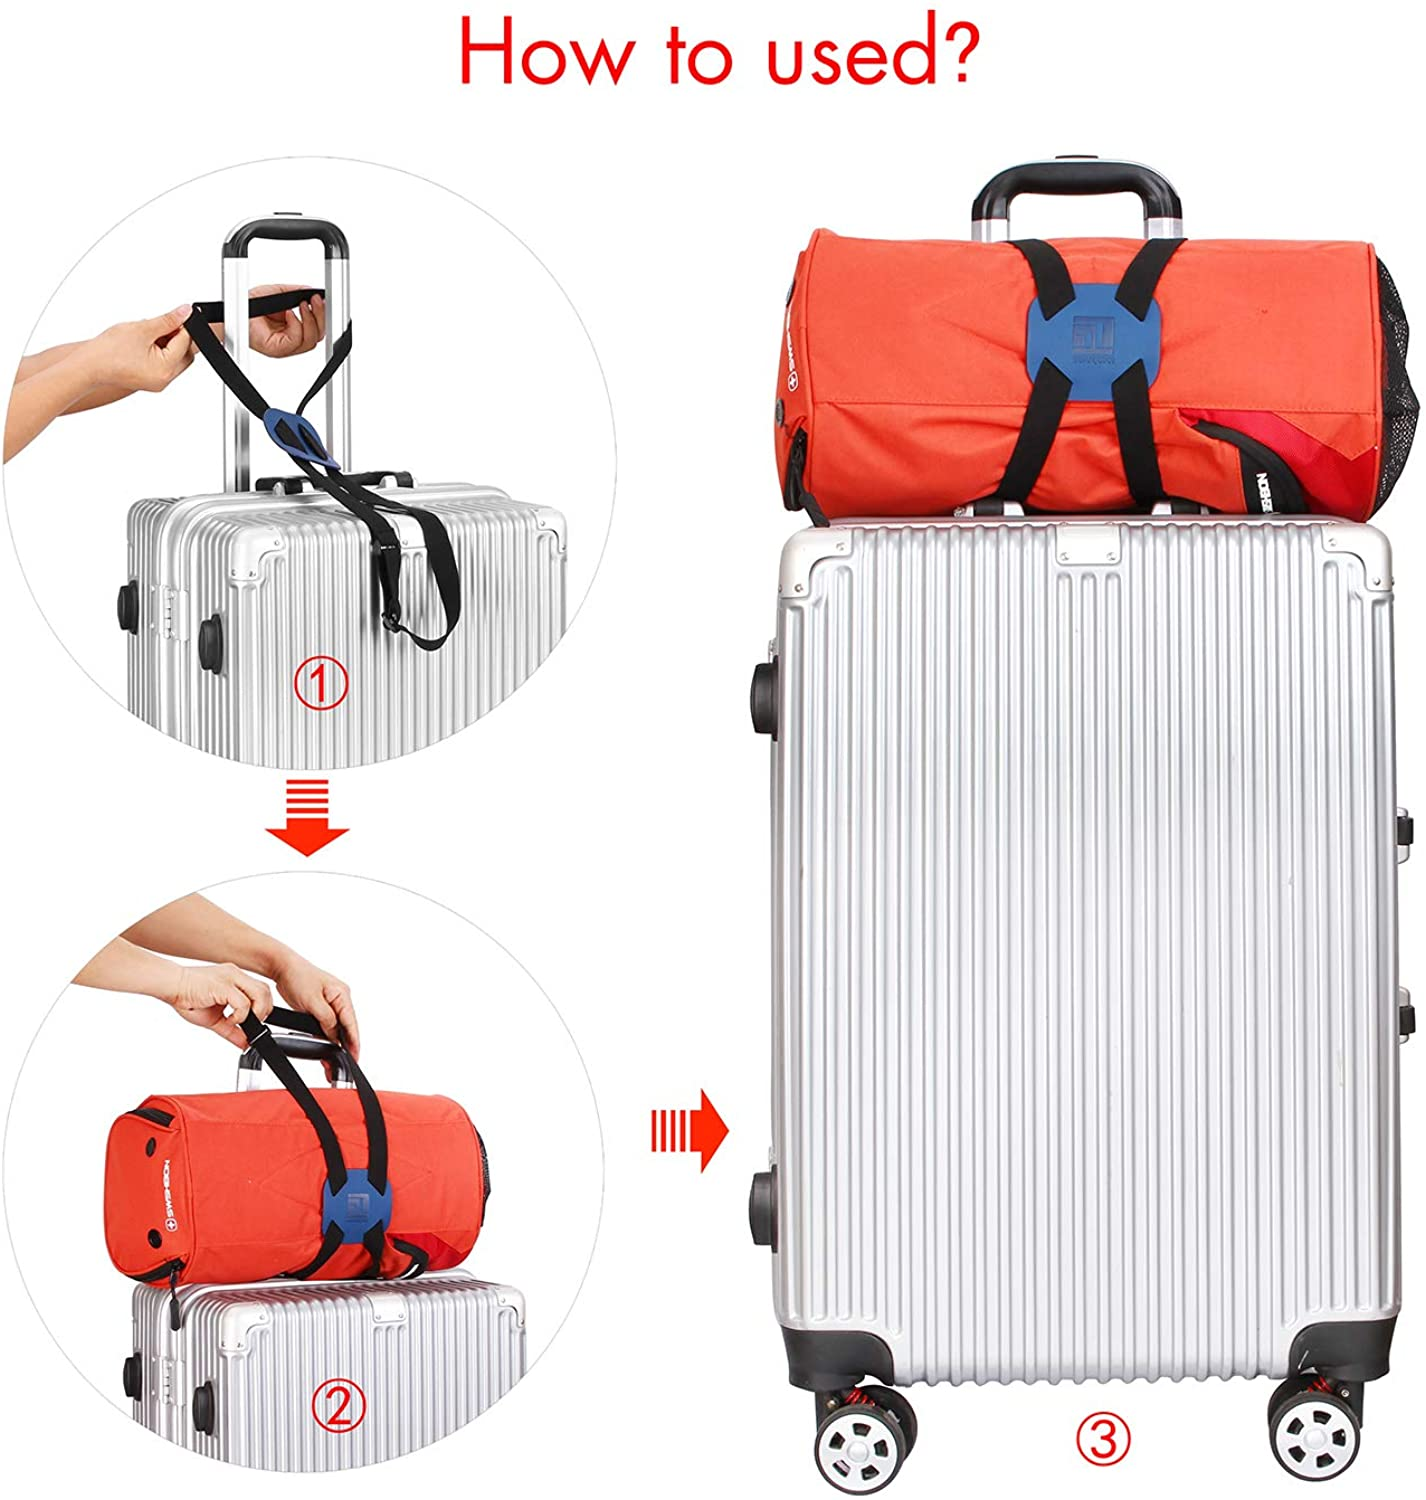 RED//BLUE ELASTIC BUNGEE ROPE Hook 8kg Strong Travel Luggage Suitcase Bag Camping